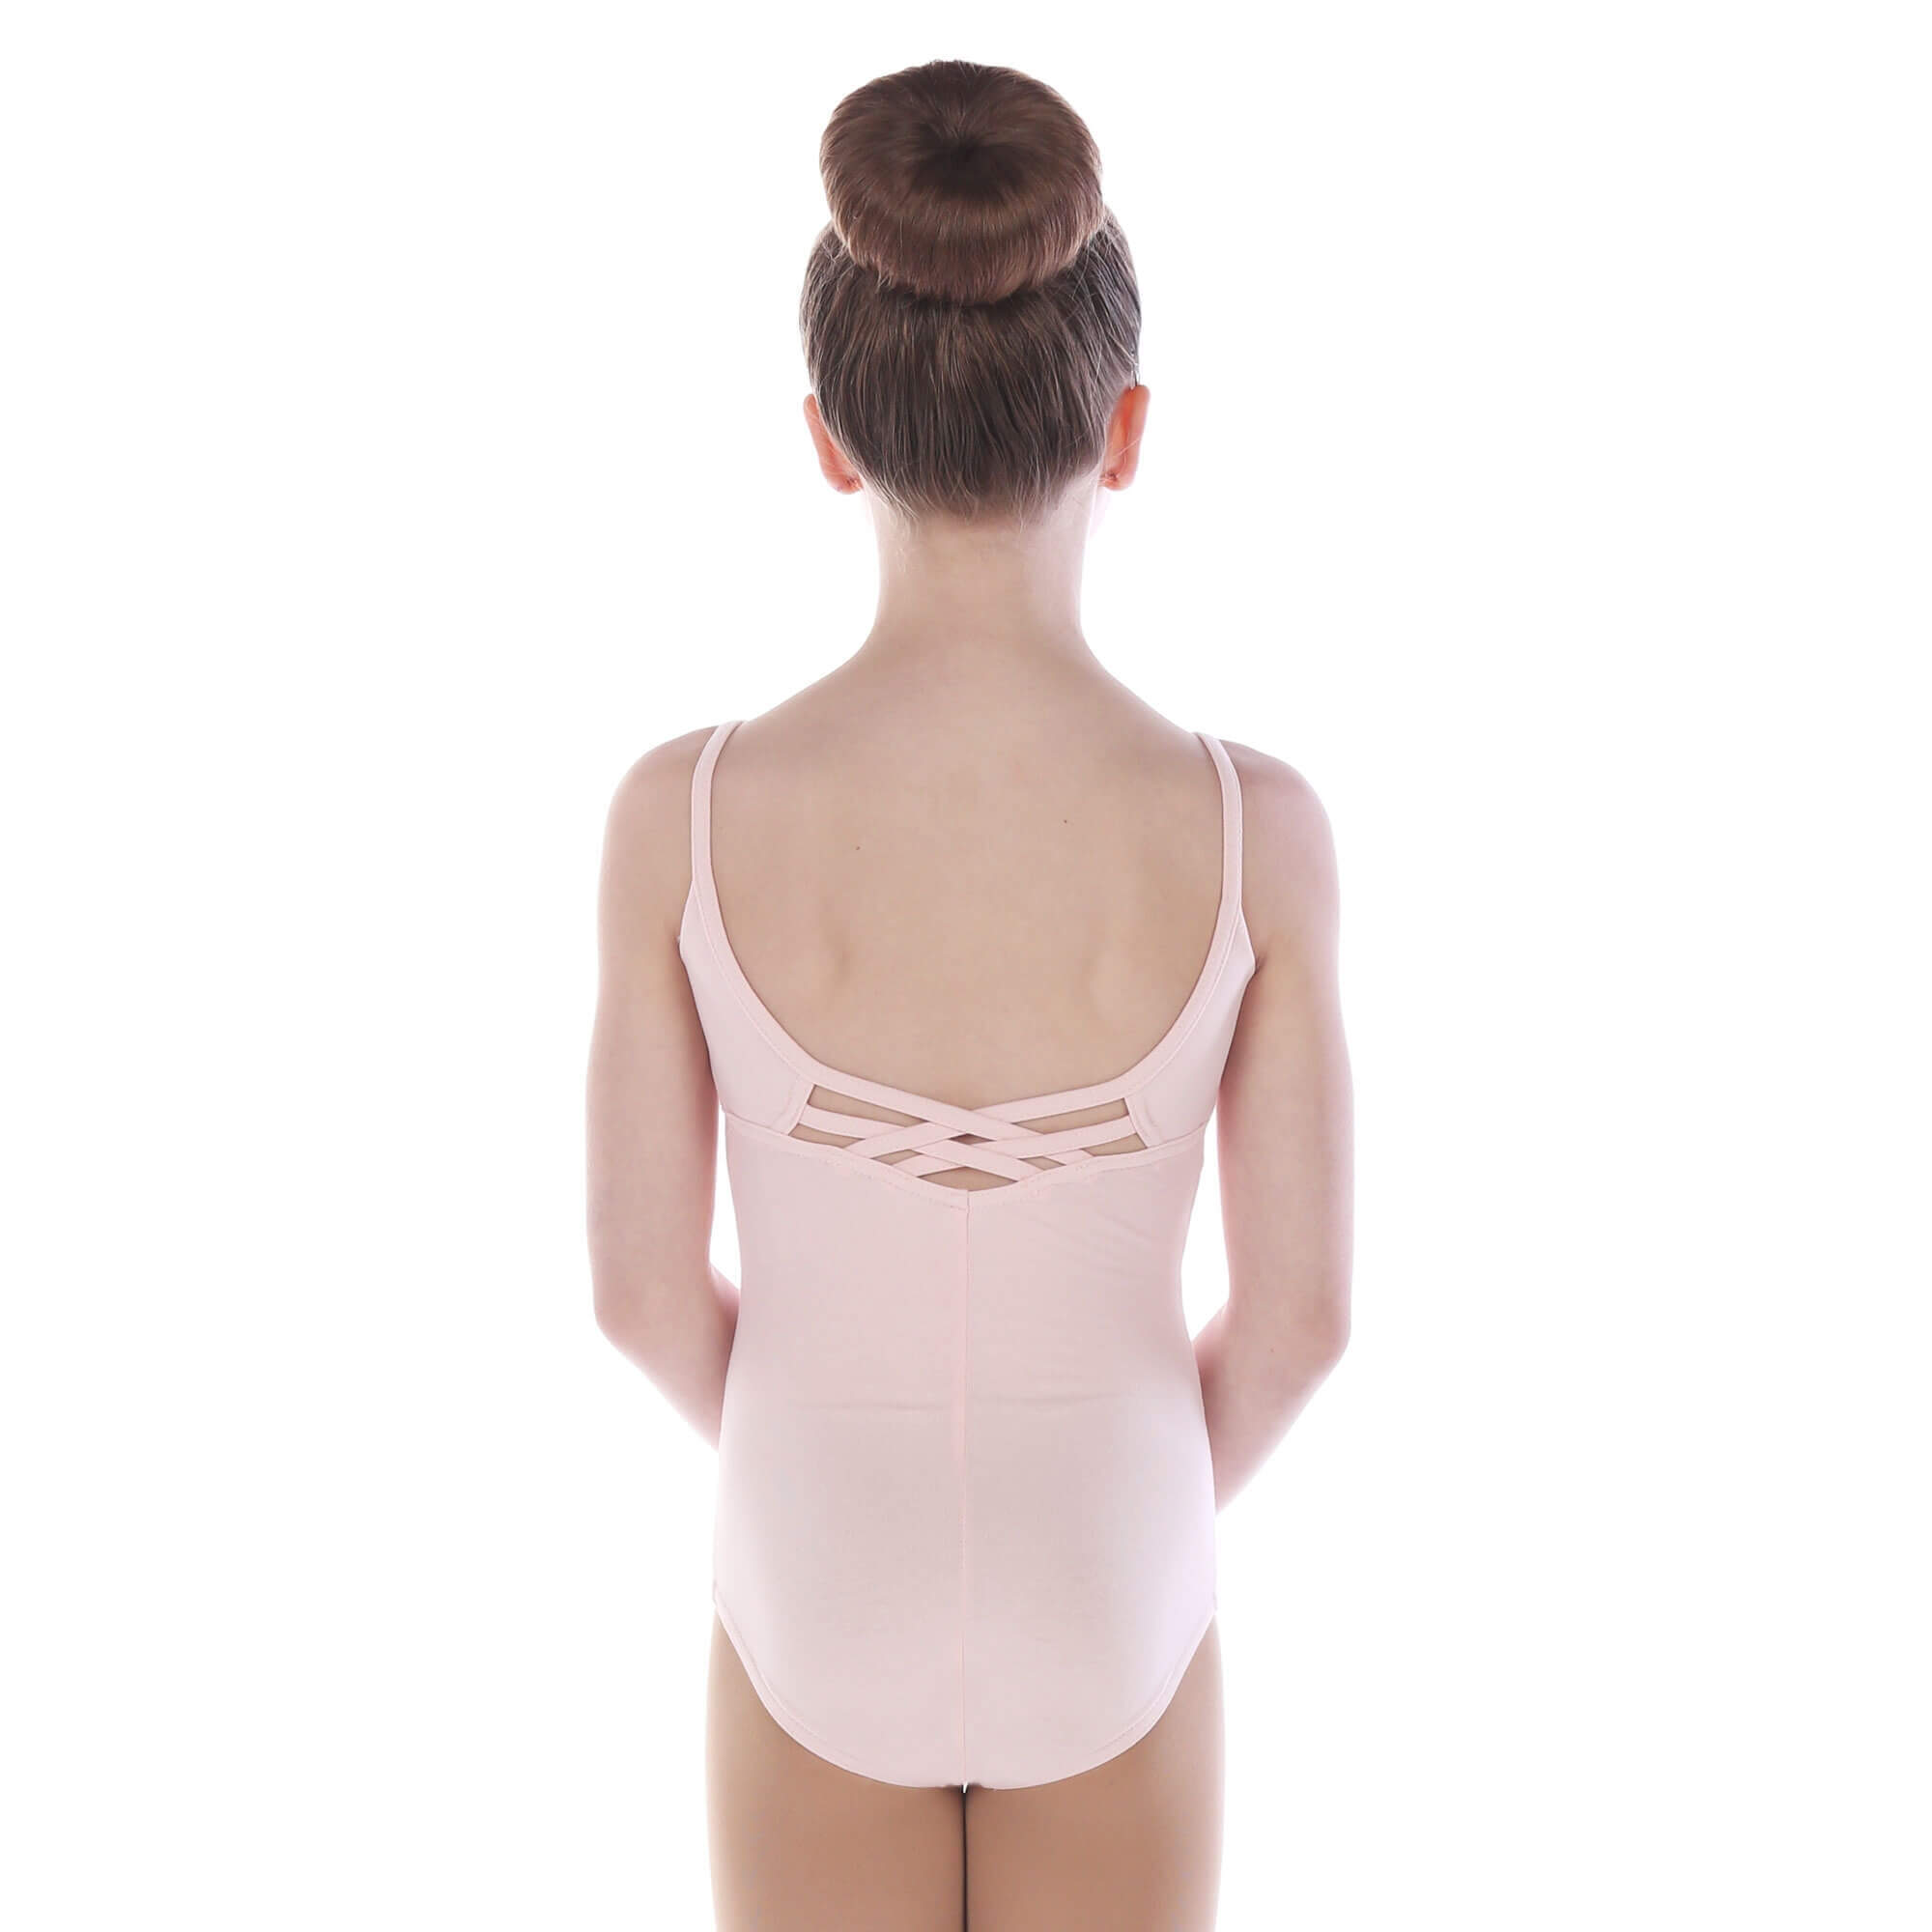 Danzcue Child Cross Back Camisole Leotard